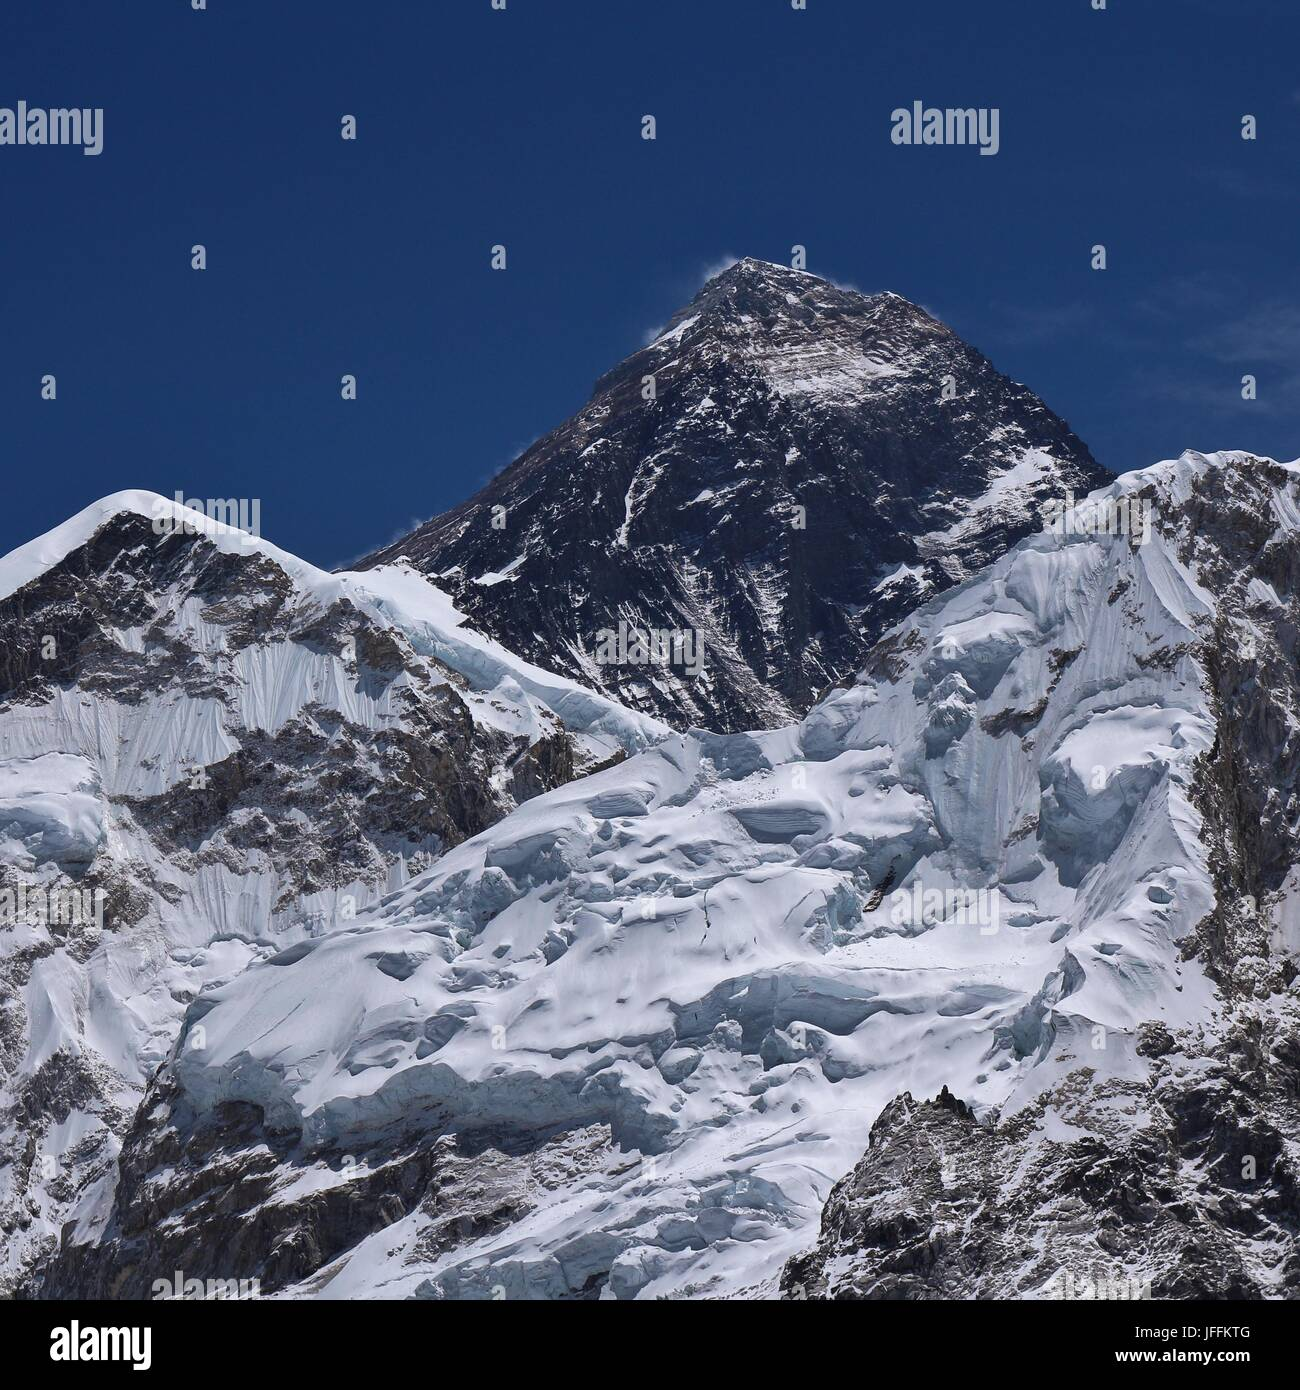 Mount Everest in spring - Stock Image